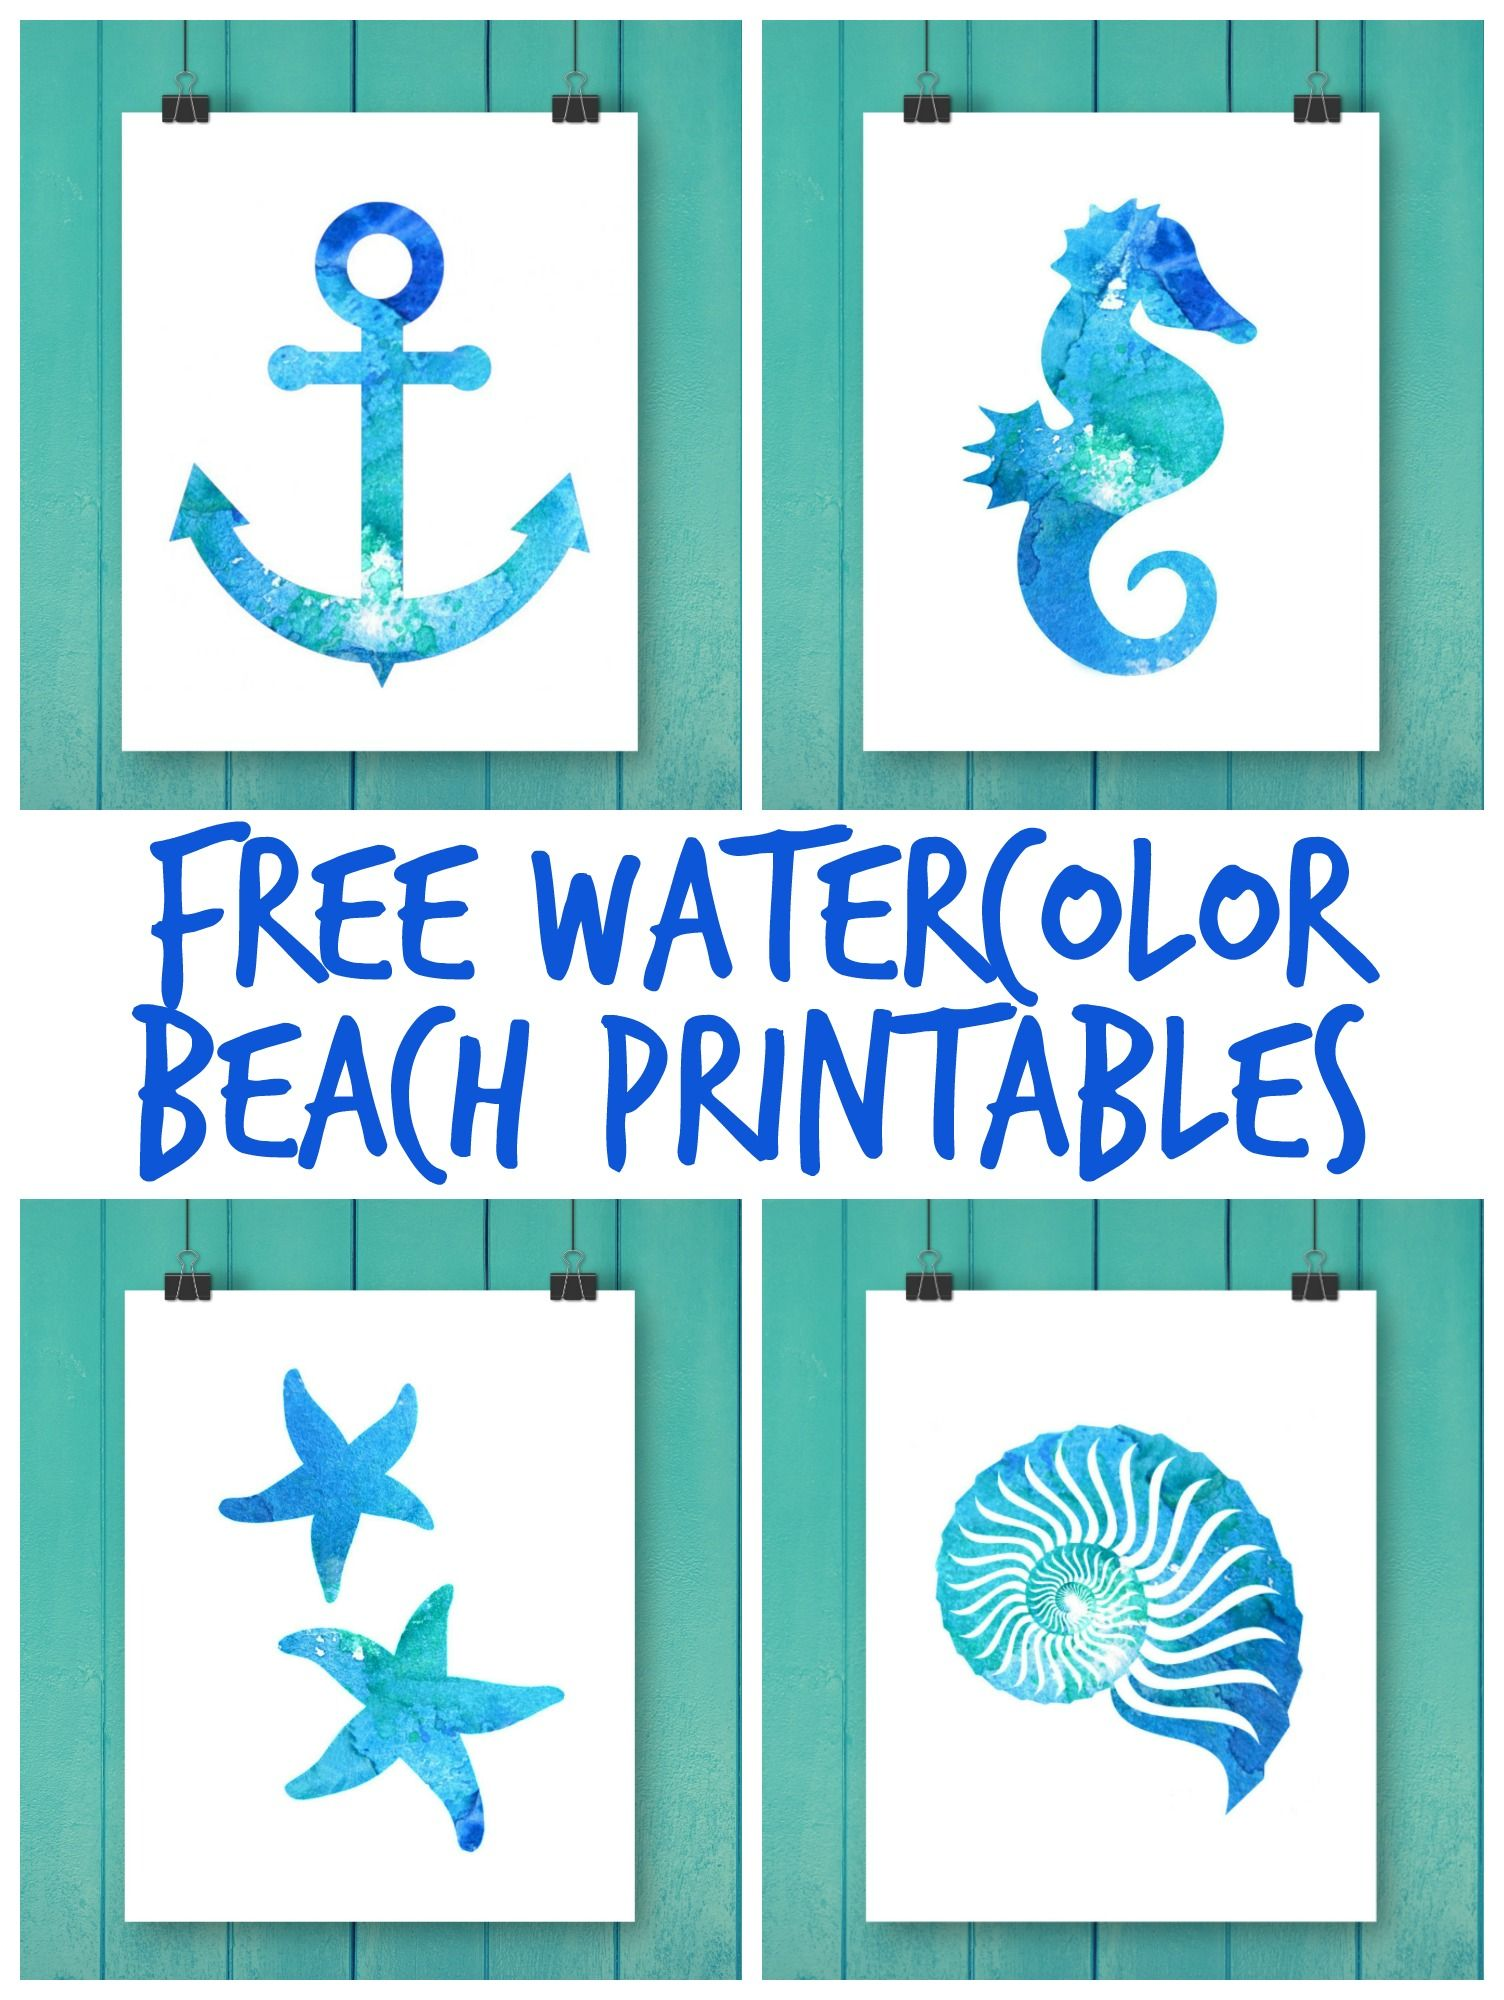 picture relating to Beach Printable titled Absolutely free Watercolor Seashore Printables Printable Artwork Seaside